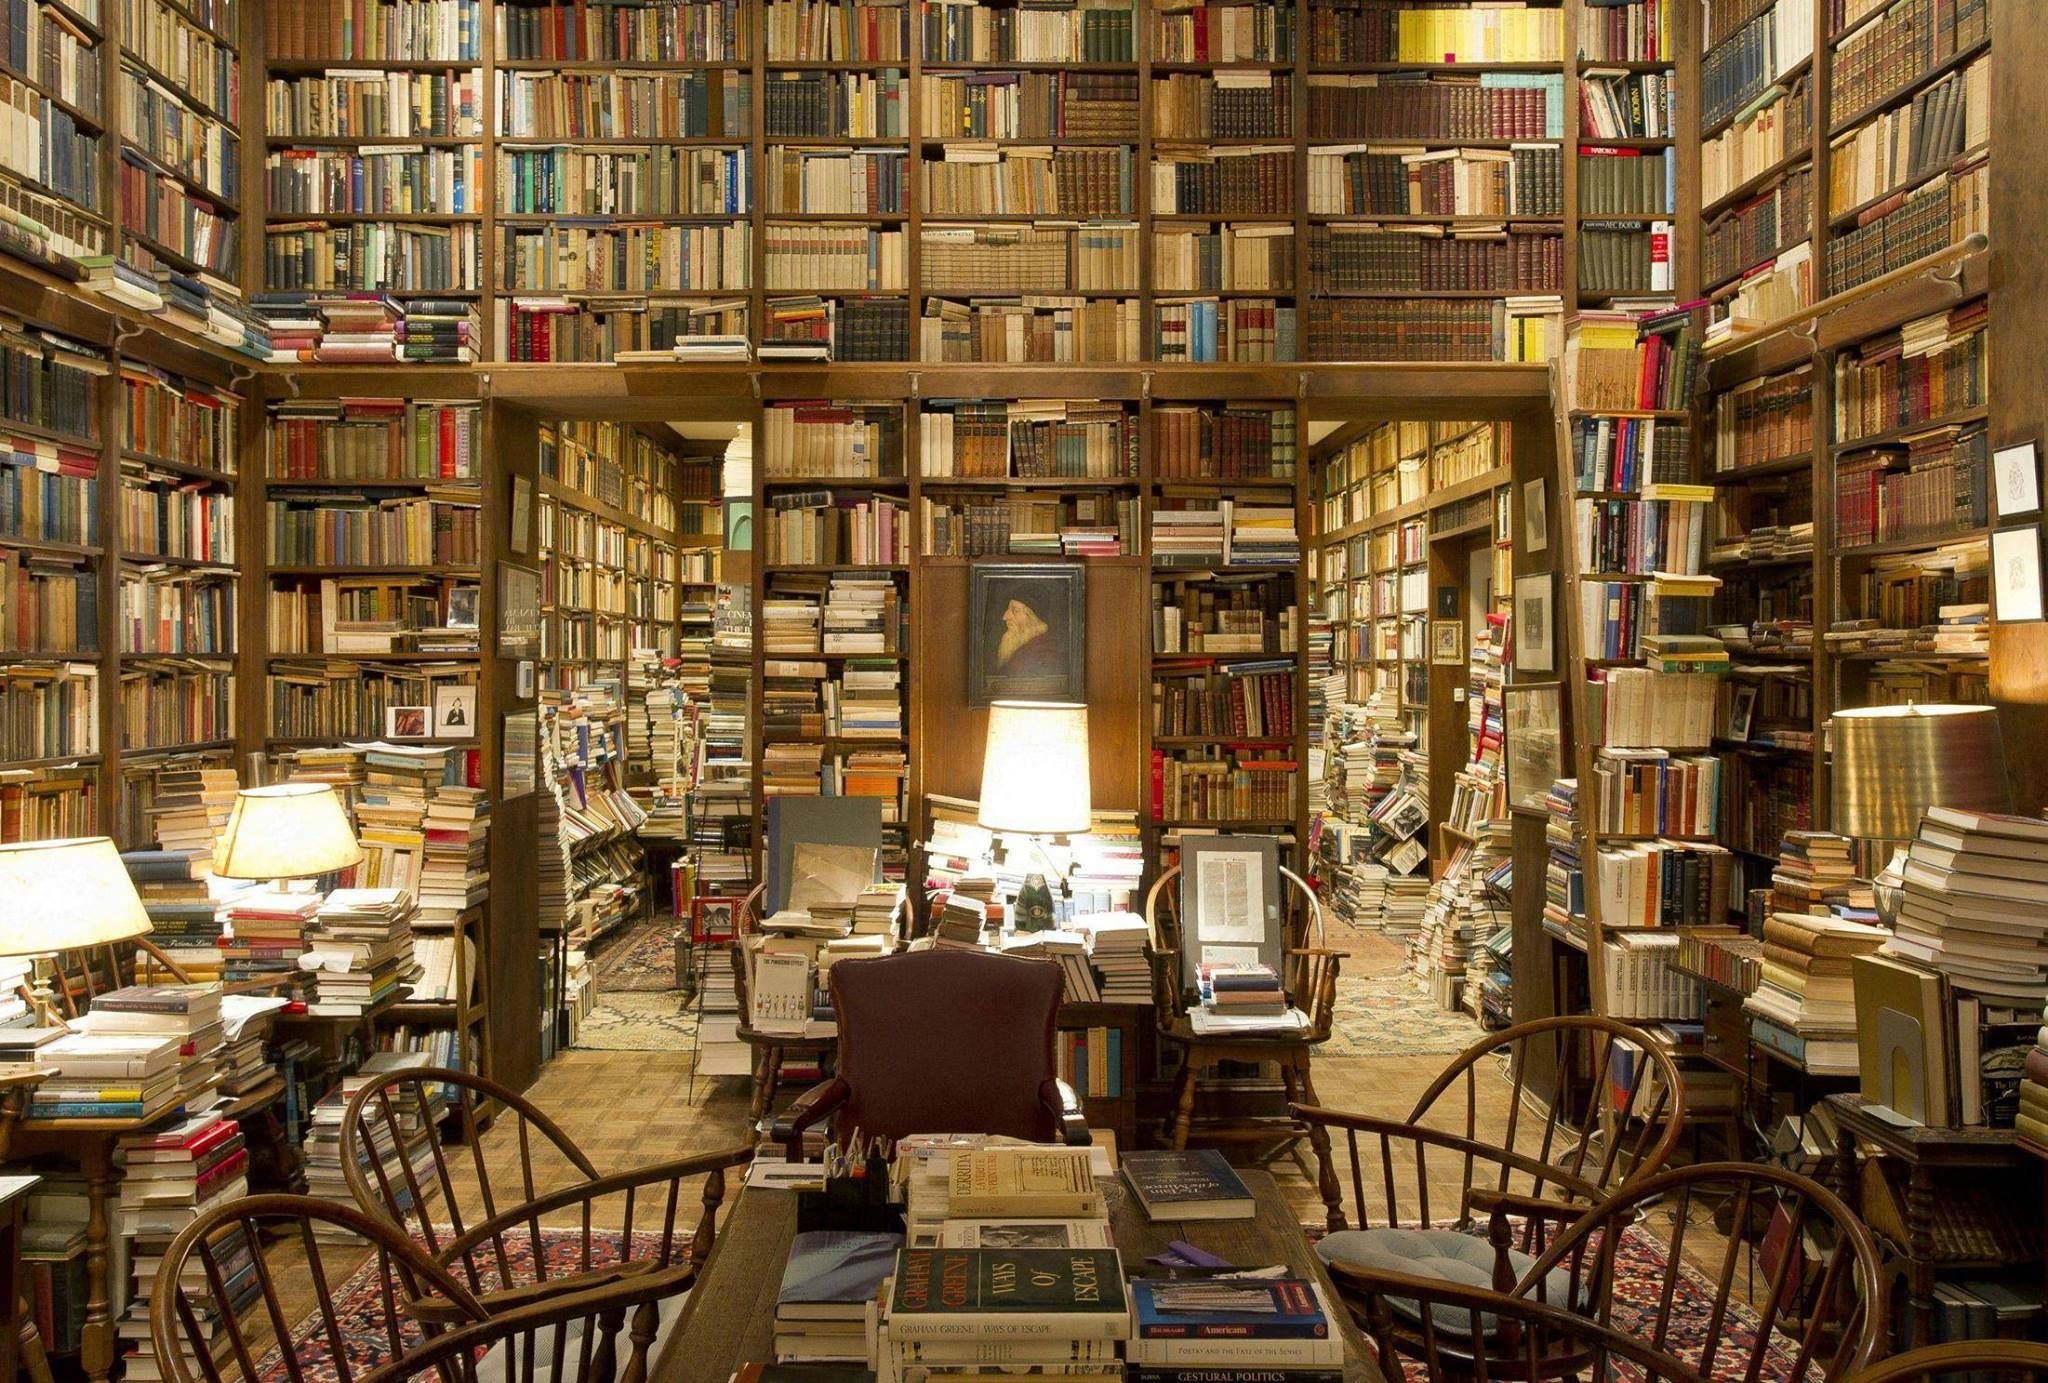 OMG I have now seen Heaven. It actually exists. Home library of humanities prof Richard Macksey [via @garethb2] https://t.co/FnCwRlo2q5